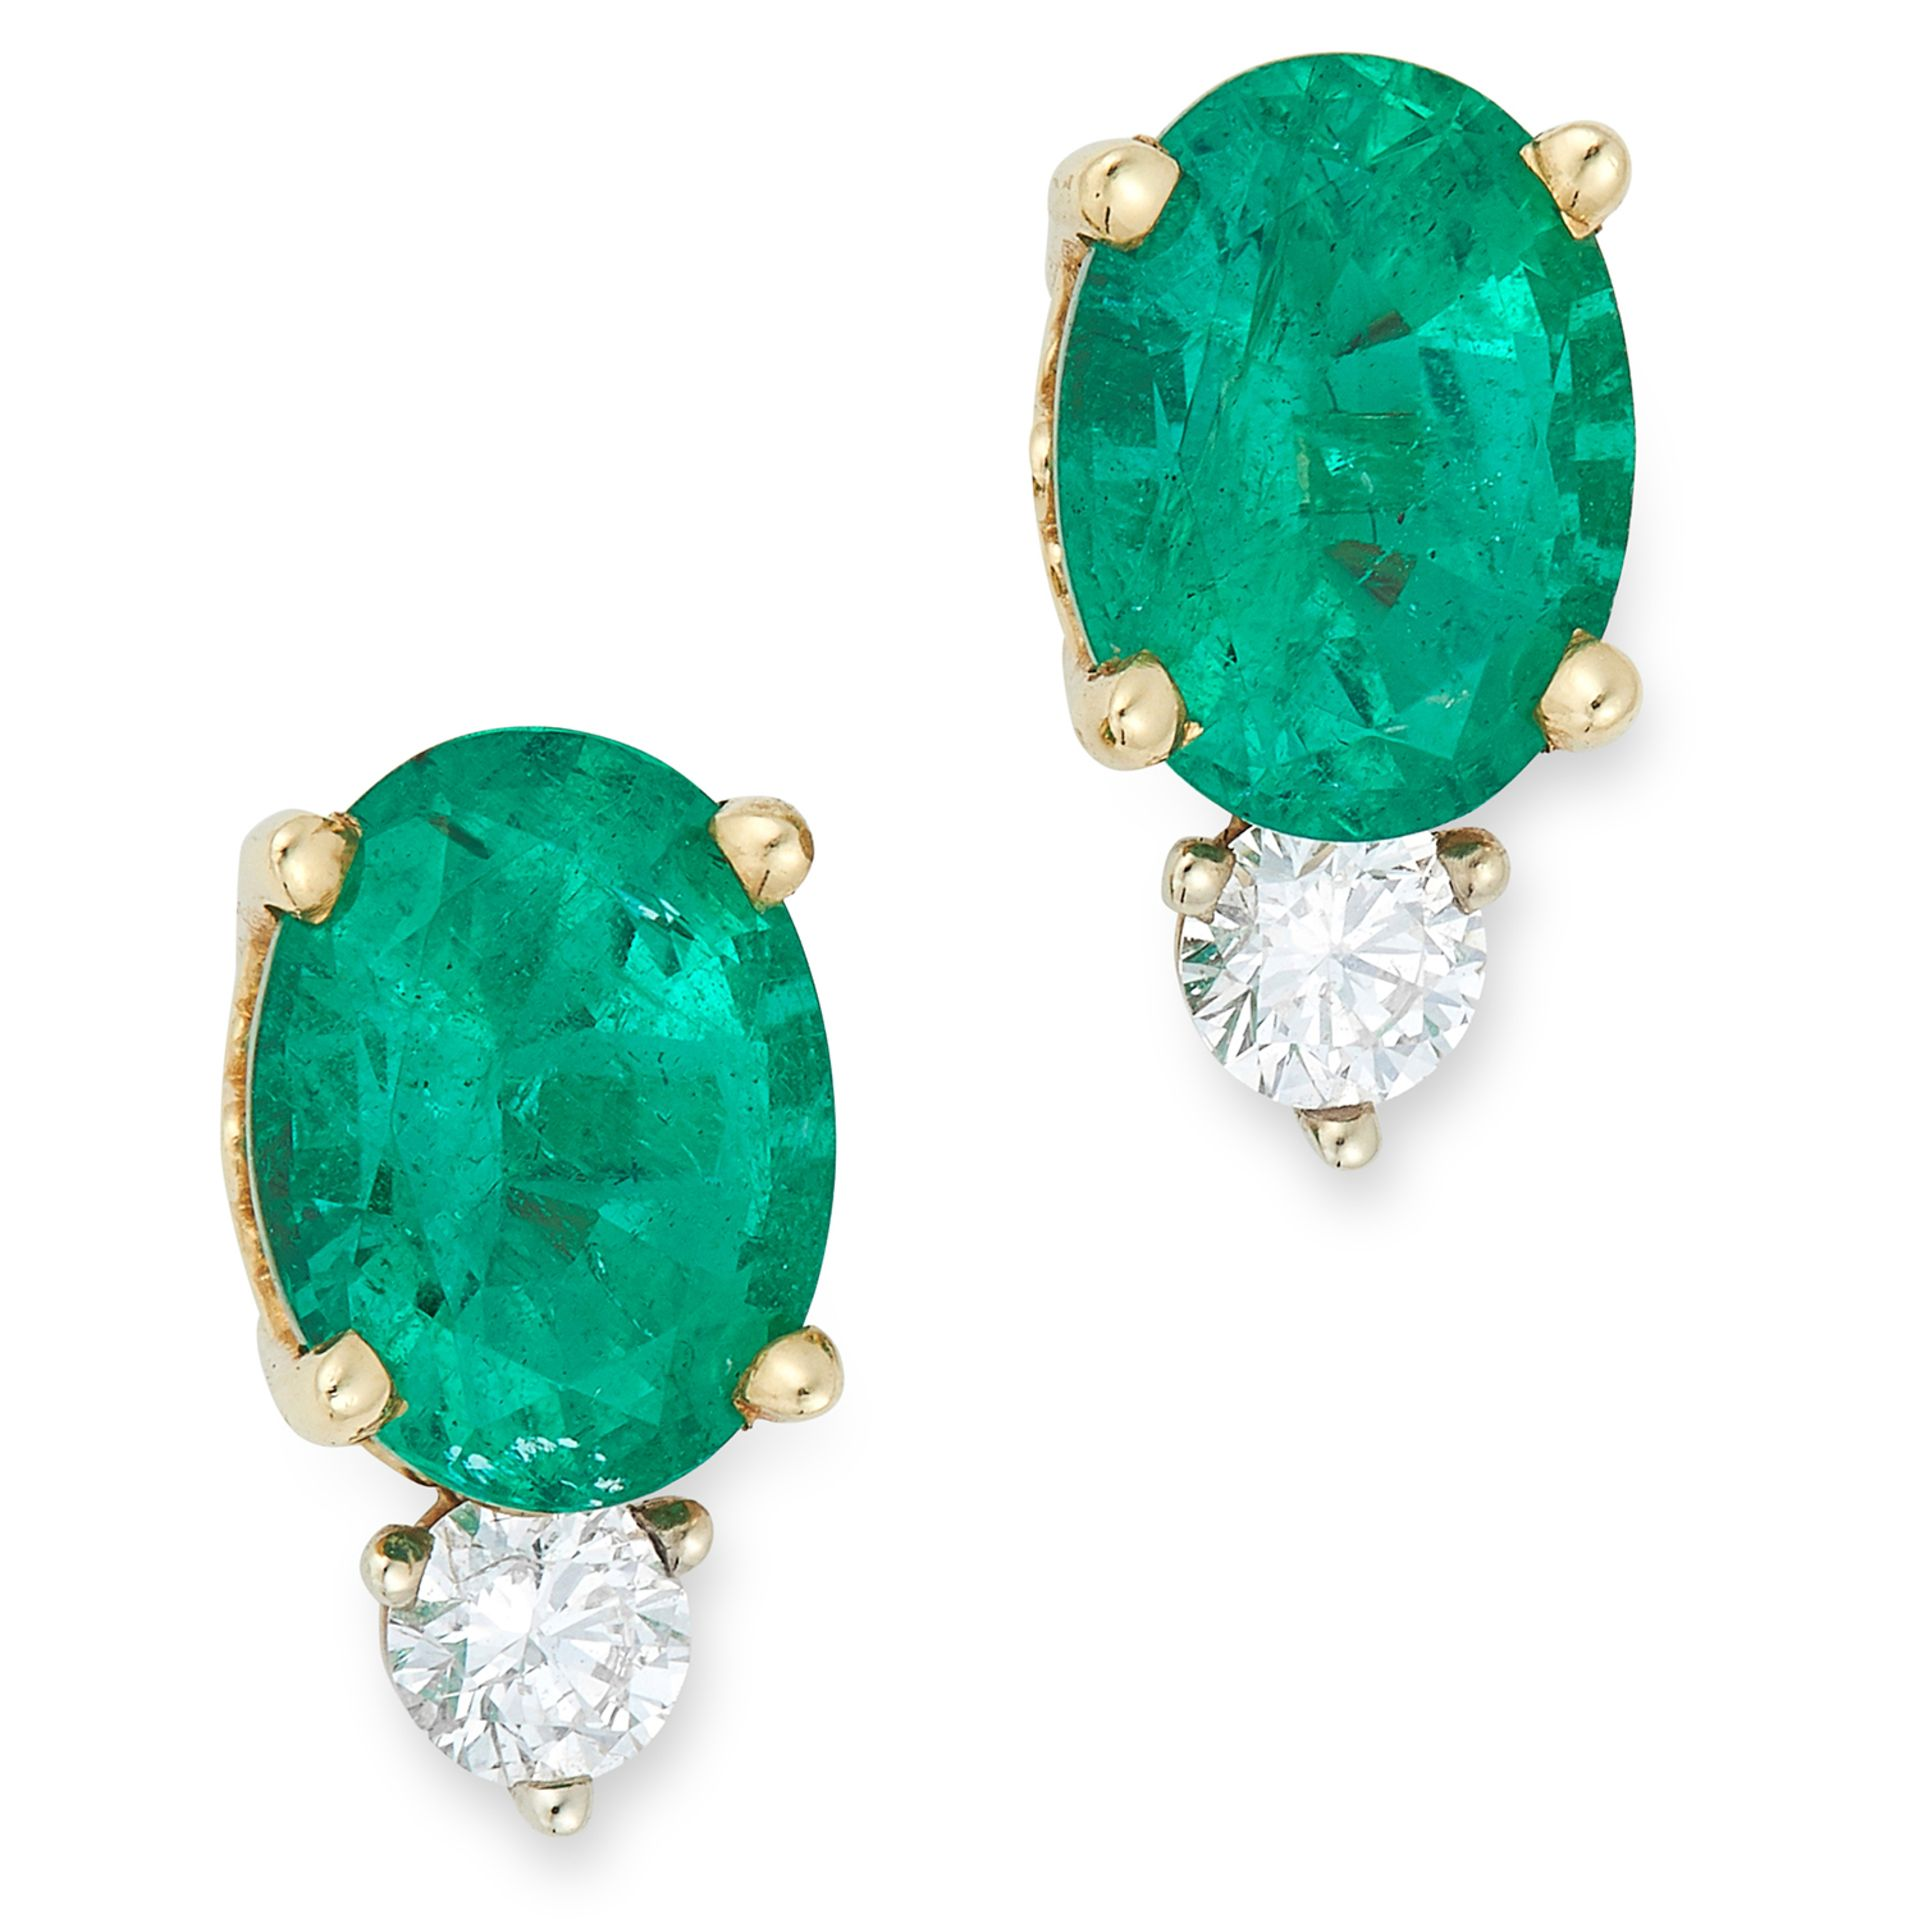 EMERALD AND DIAMOND STUD EARRINGS each set with a round cut diamond totalling approximately 0.10